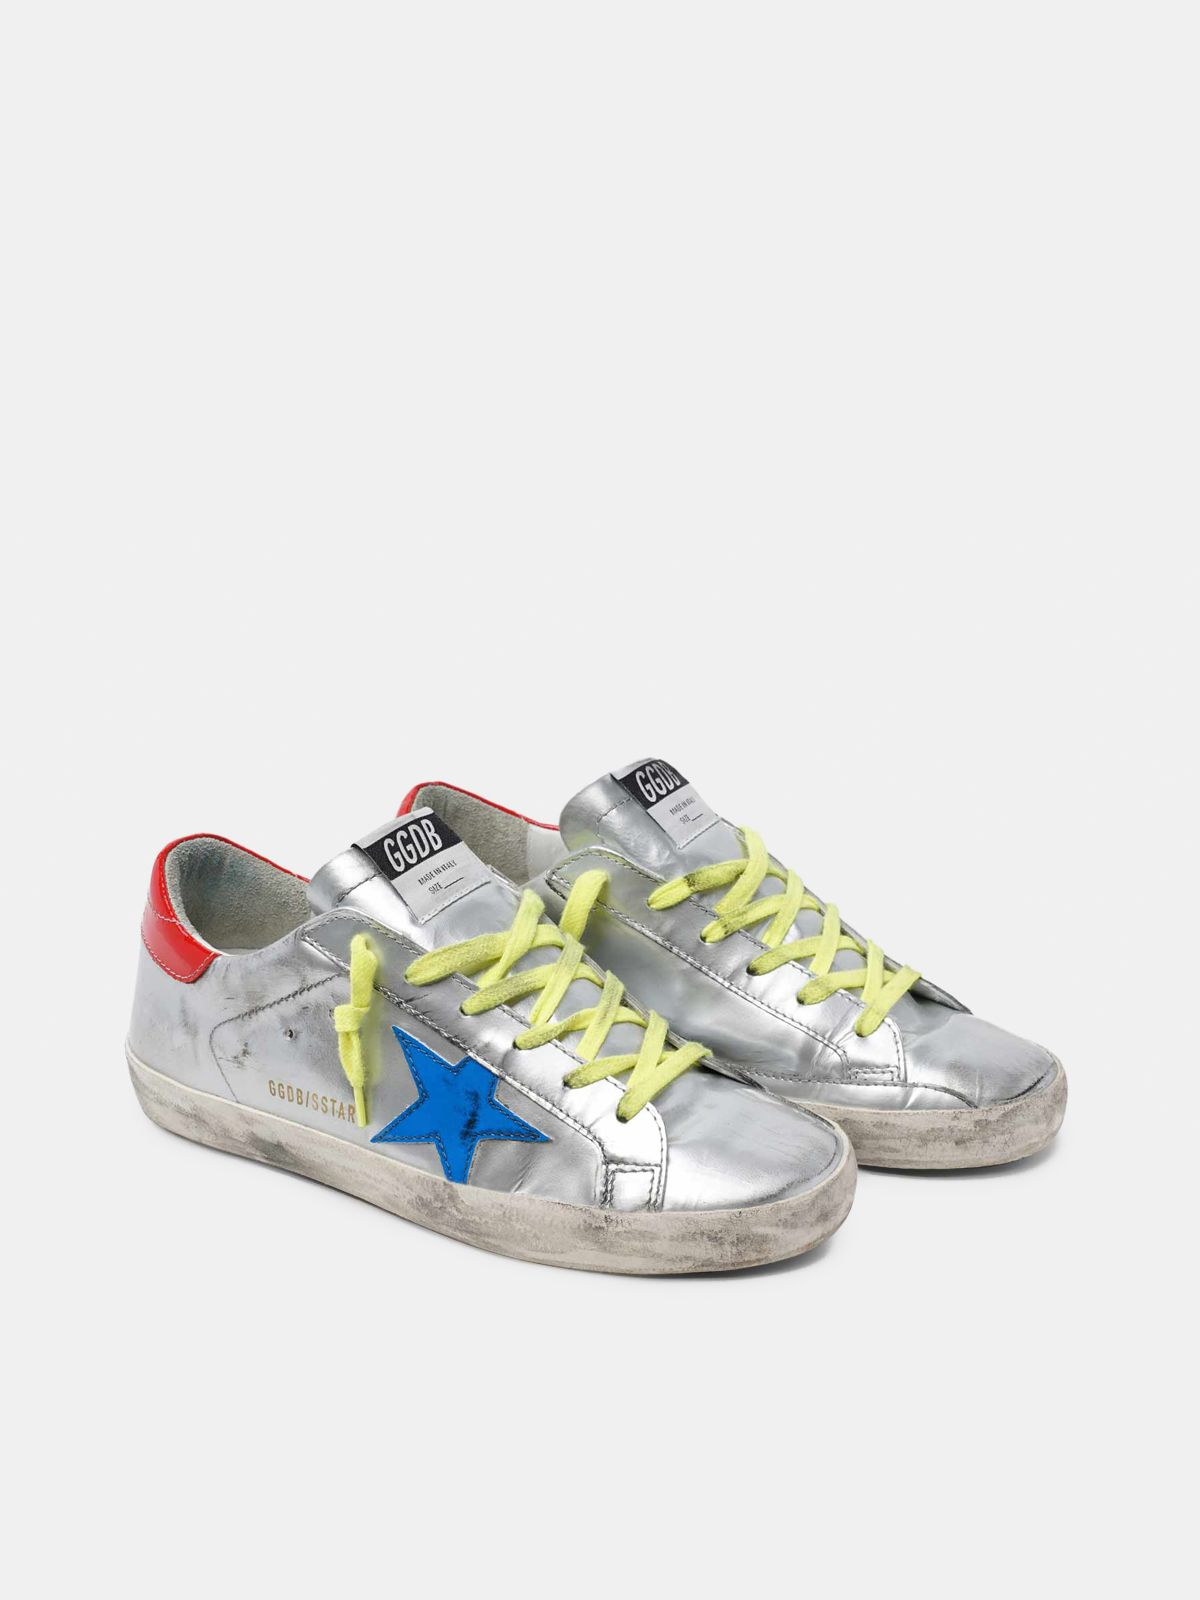 Golden Goose - Silver Super-Star sneakers with blue star in